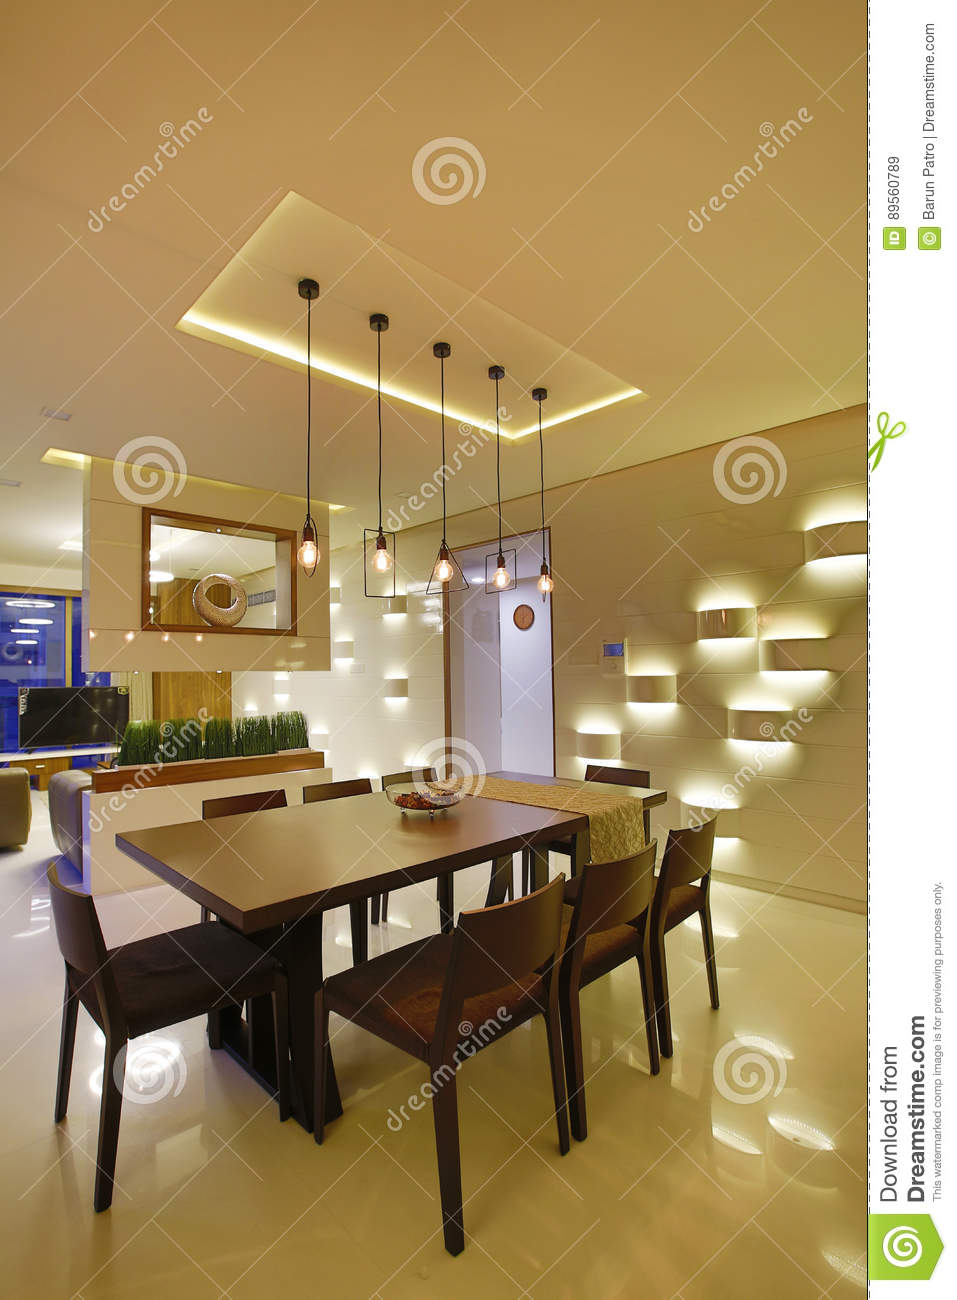 Amar Architecture Calicut Chairs Designs Dining India Lighting